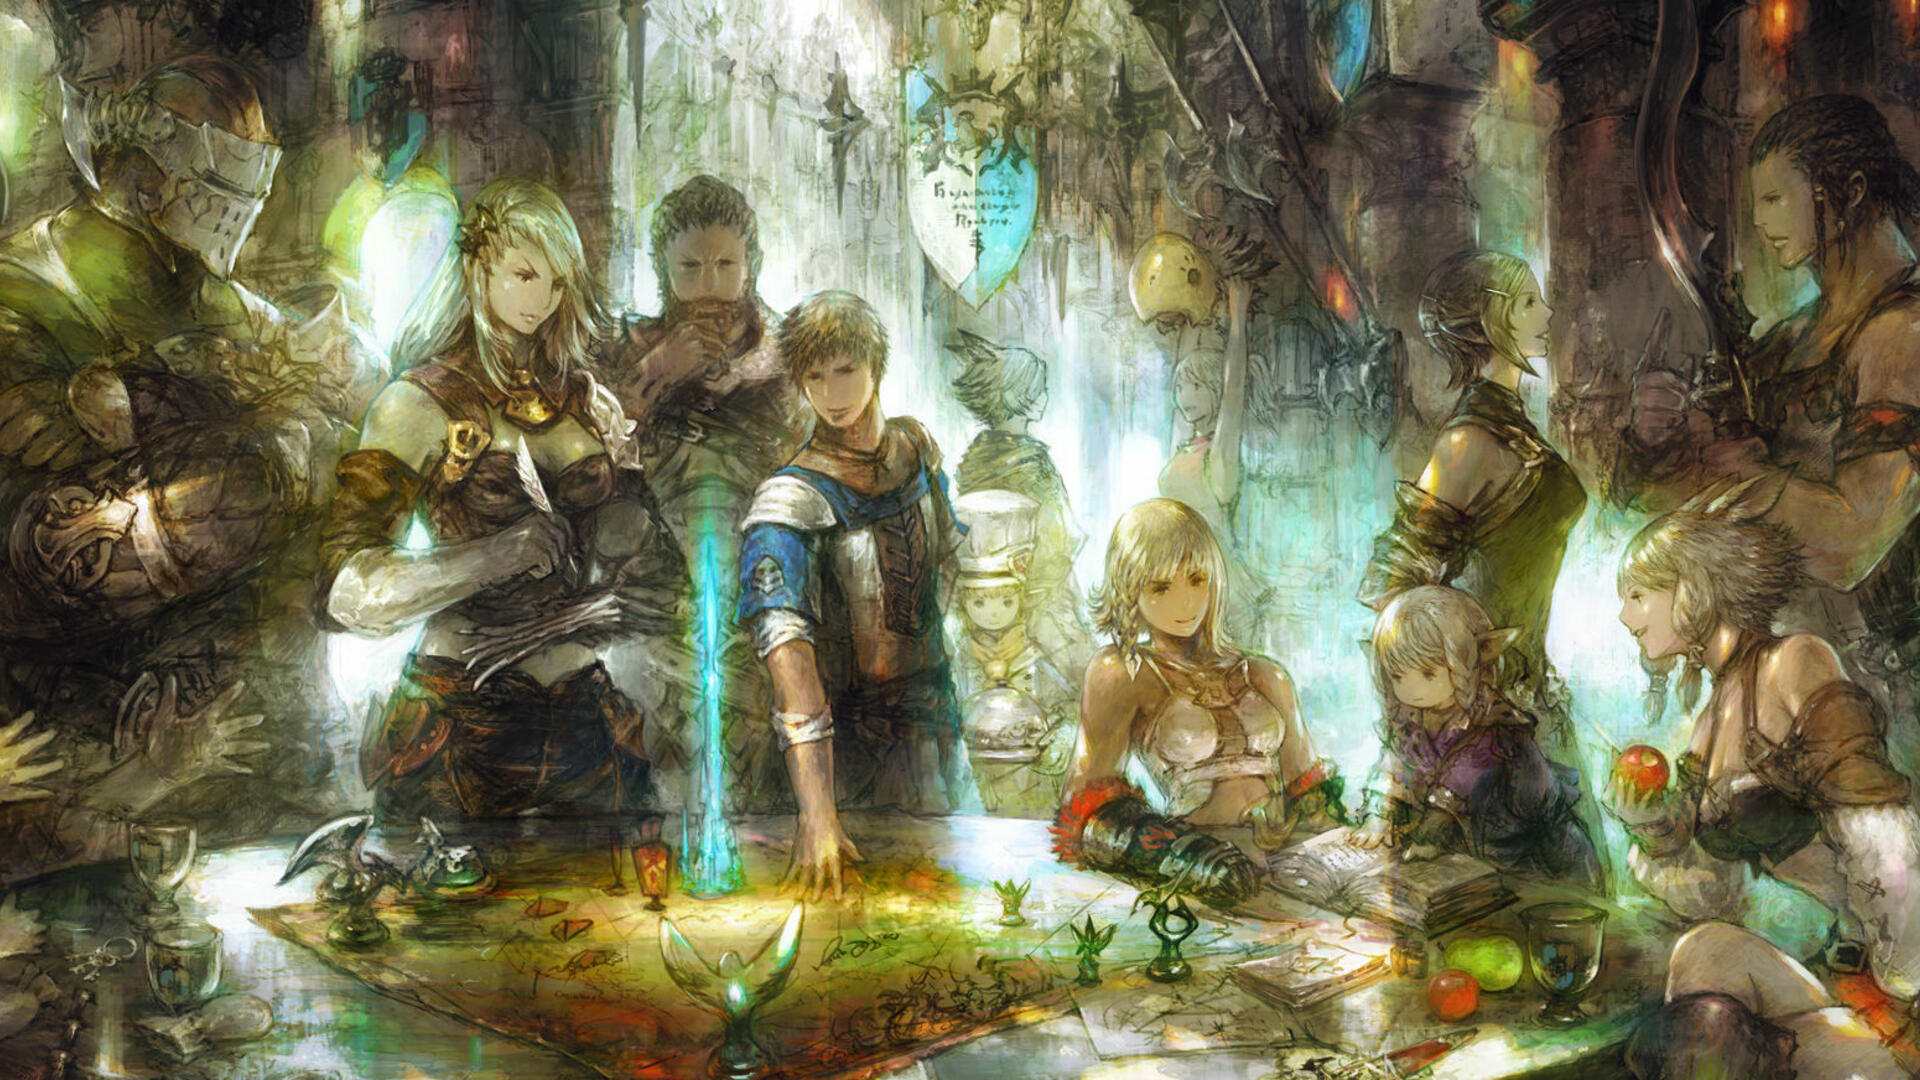 Spectacular FFXIV Trailer Shows What's Next for A Realm Reborn